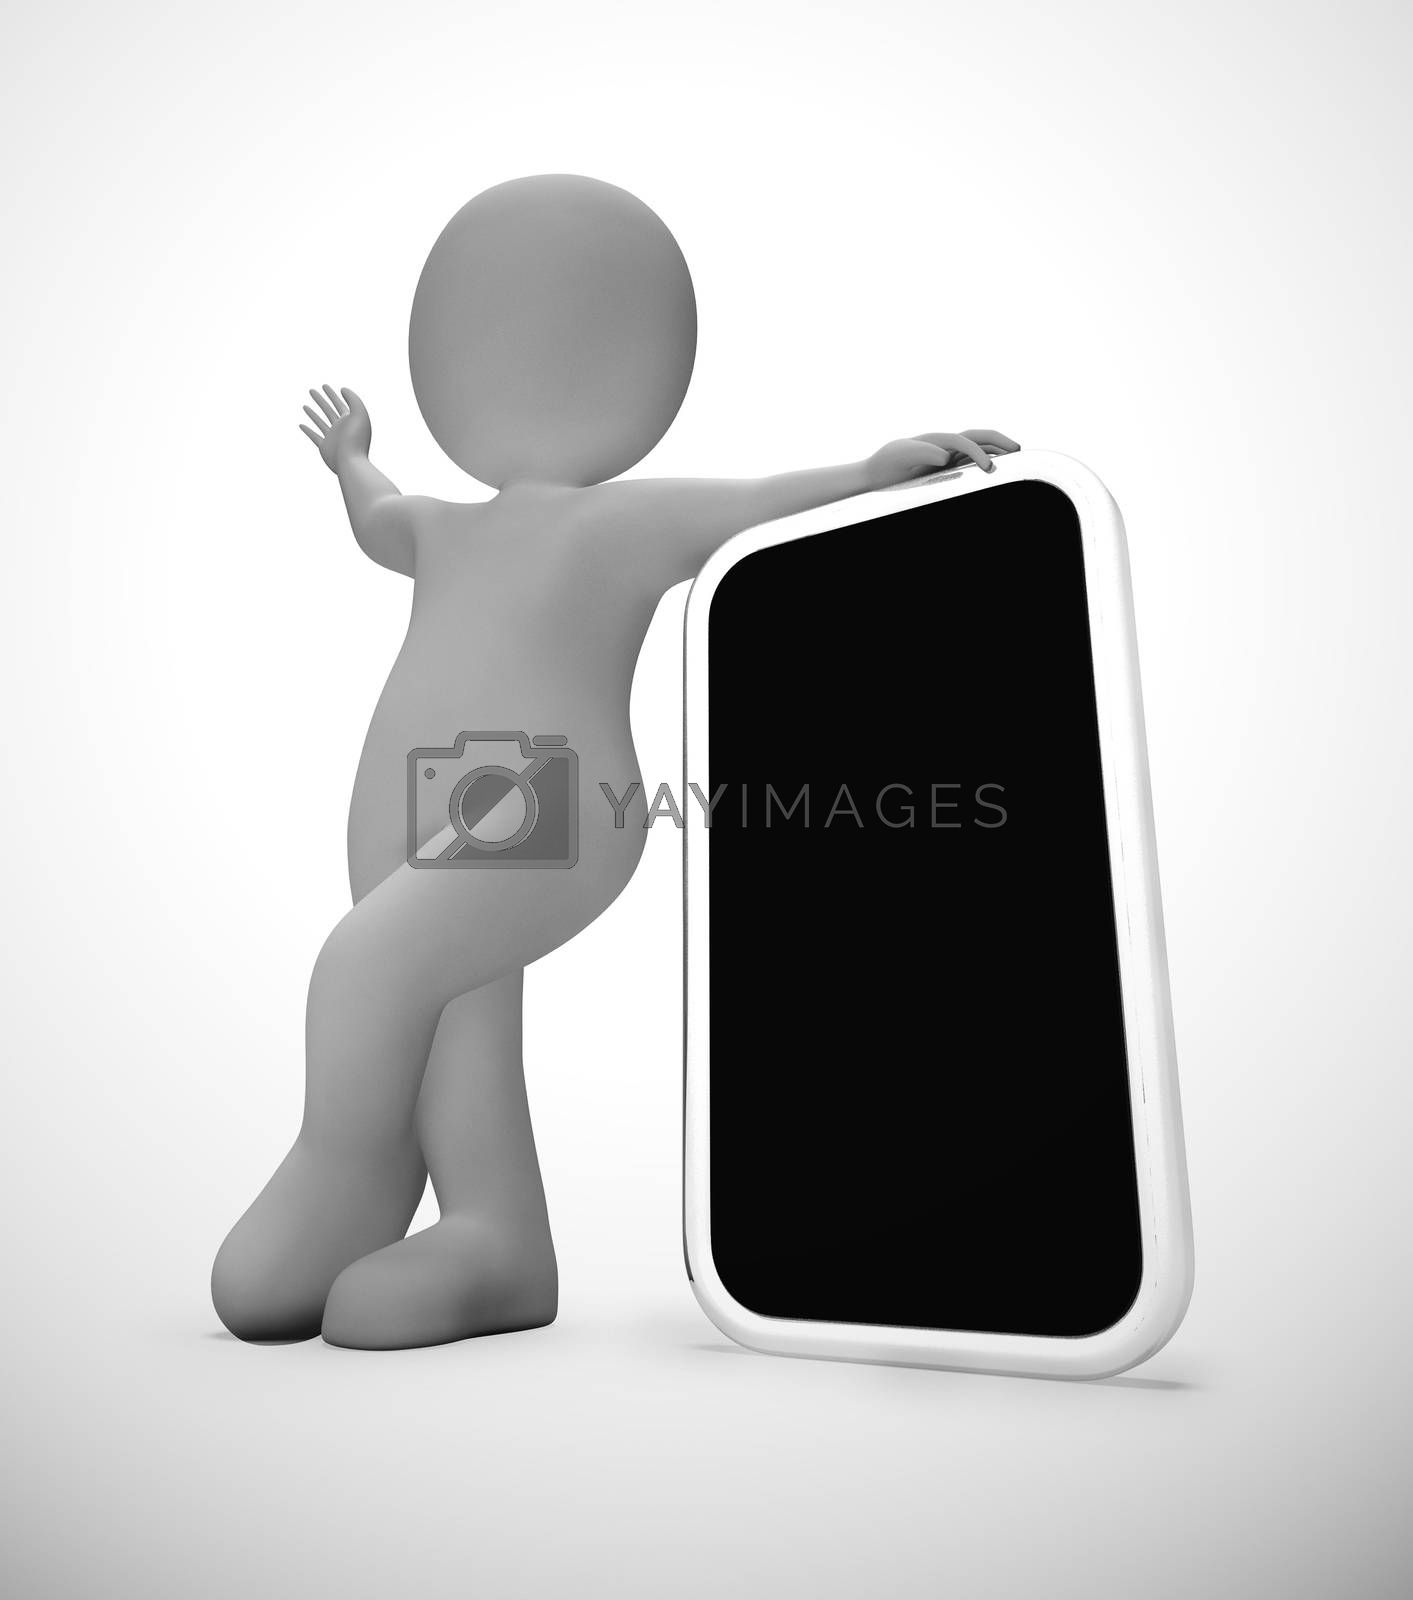 Royalty free image of Smartphone or cellular mobile device for apps and internet Mocku by stuartmiles